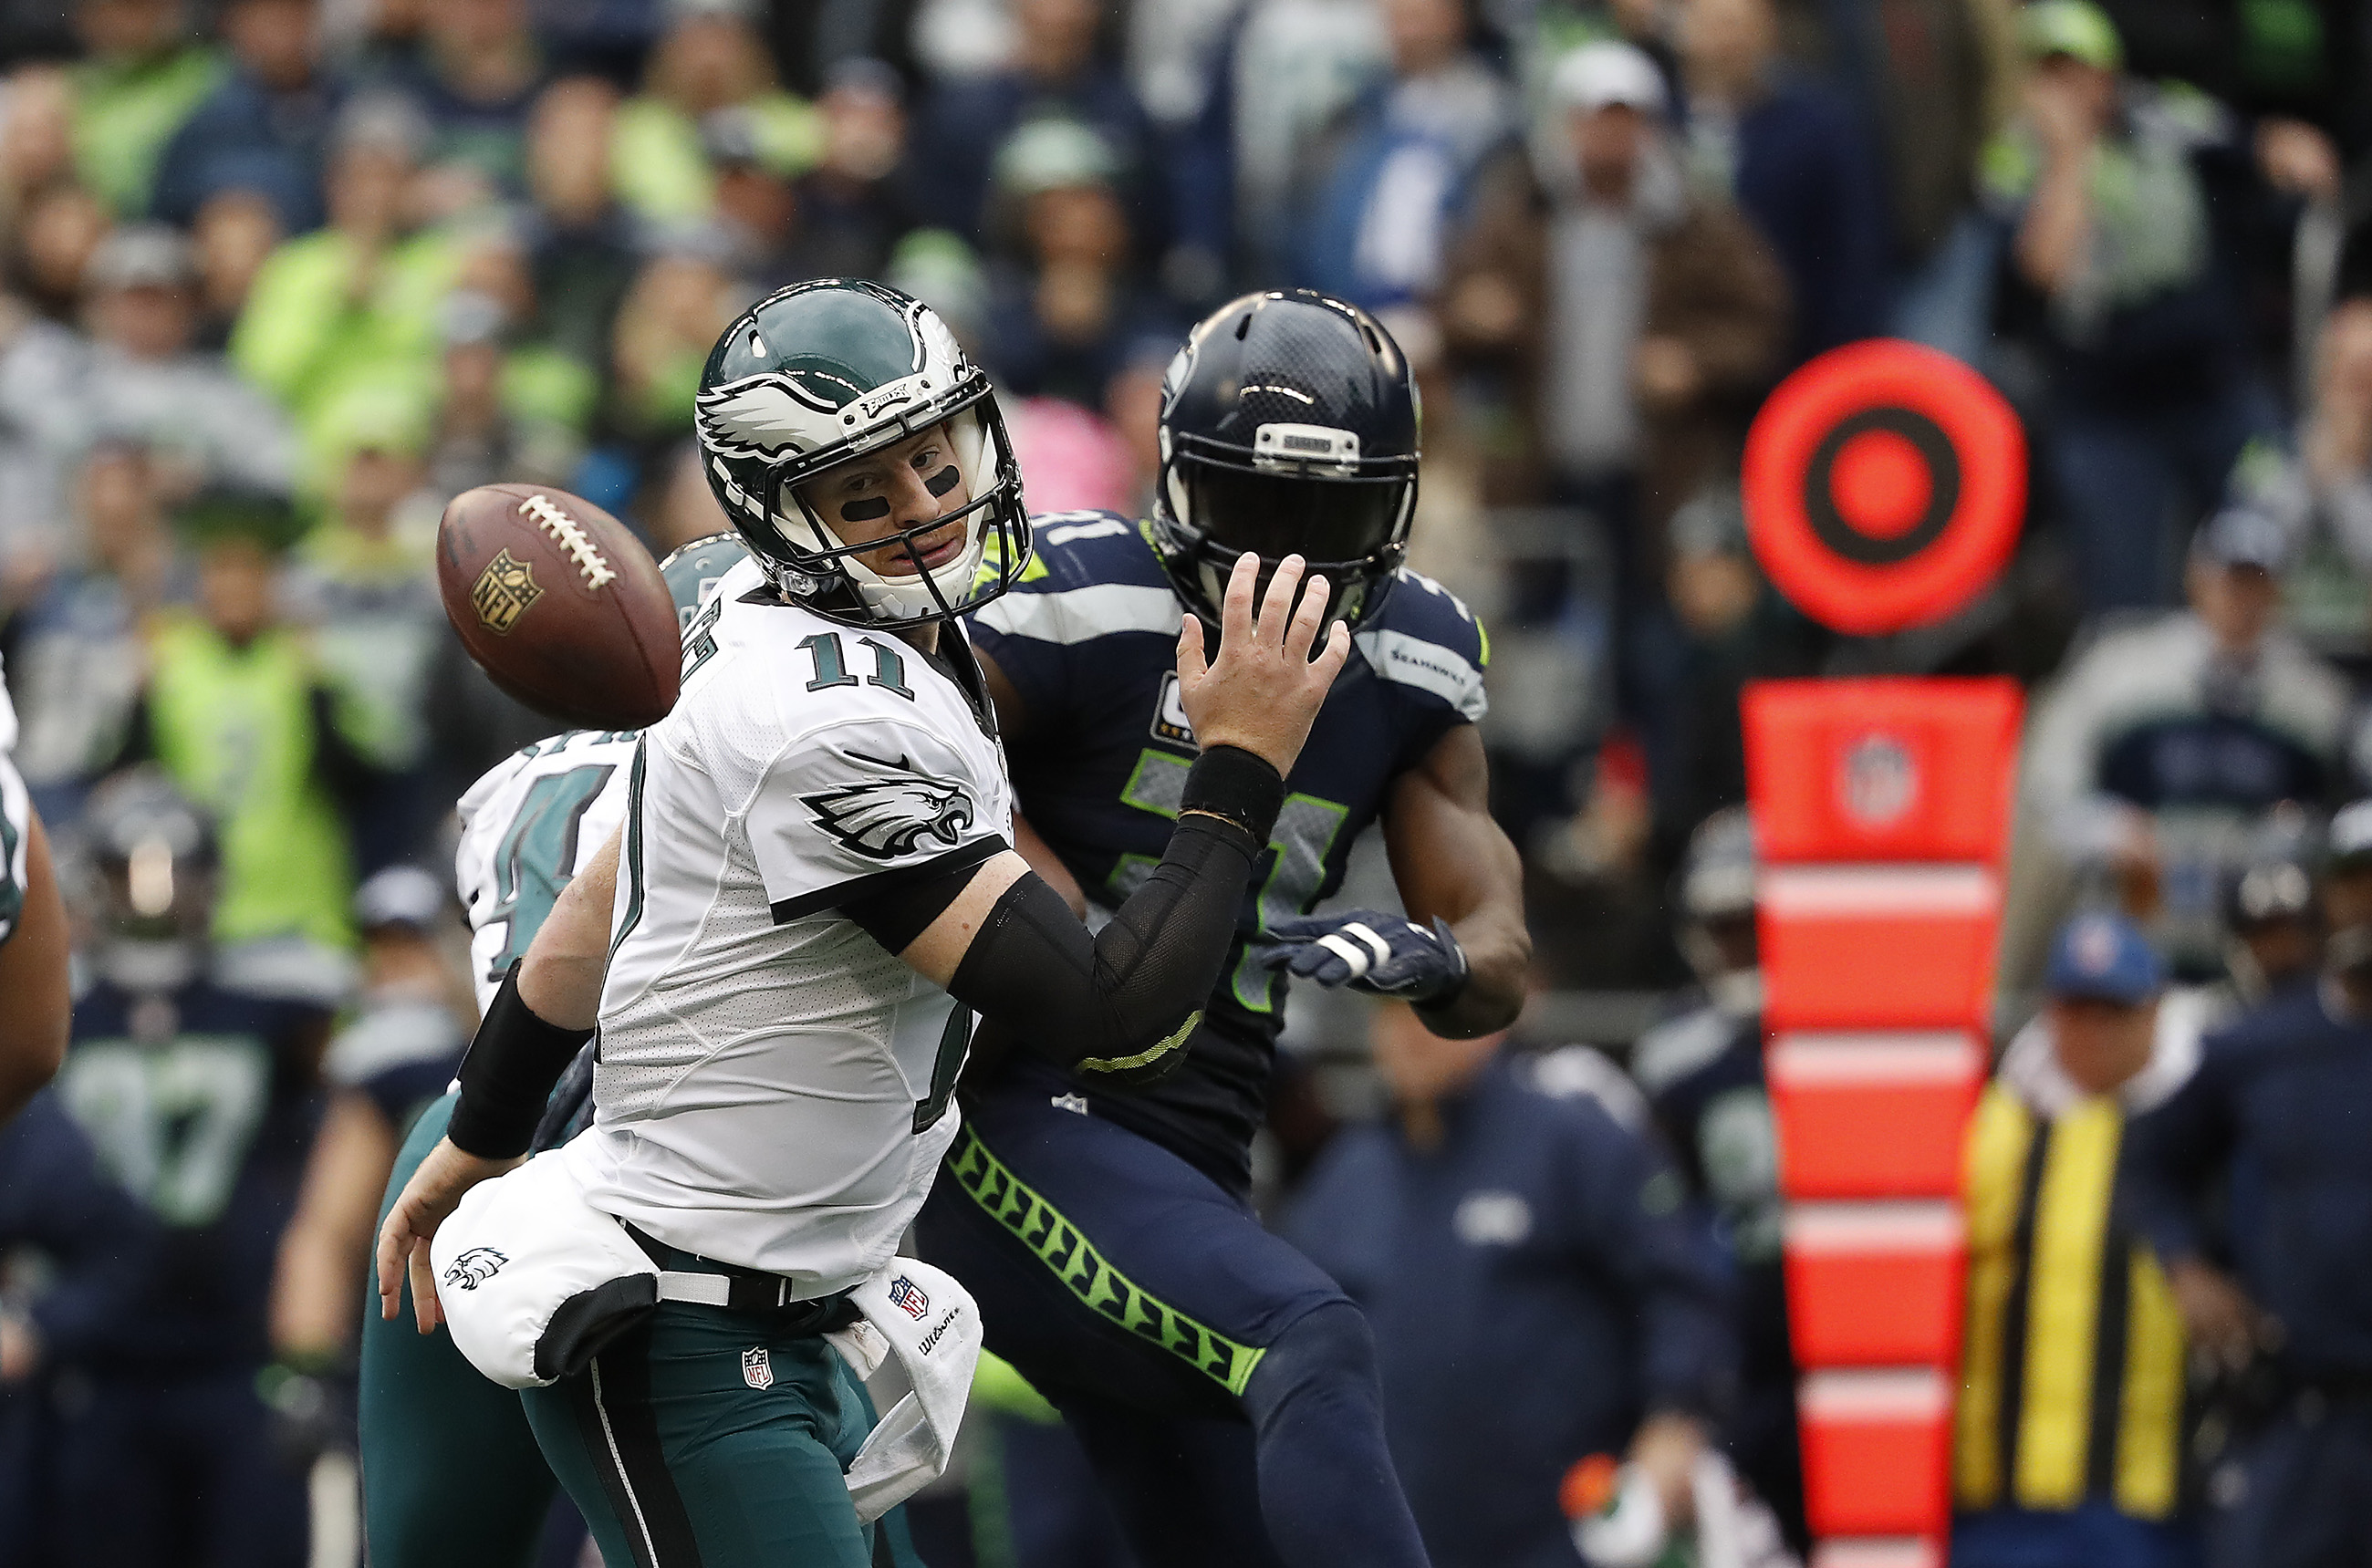 Eagles' Carson Wentz, left, has a pass blocked by the Seahawks' Kam Chancellor, right, during the 2nd quarter as the Philadelphia Eagles play the Seattle Seahawks in Seattle, WA on November 20, 2016.